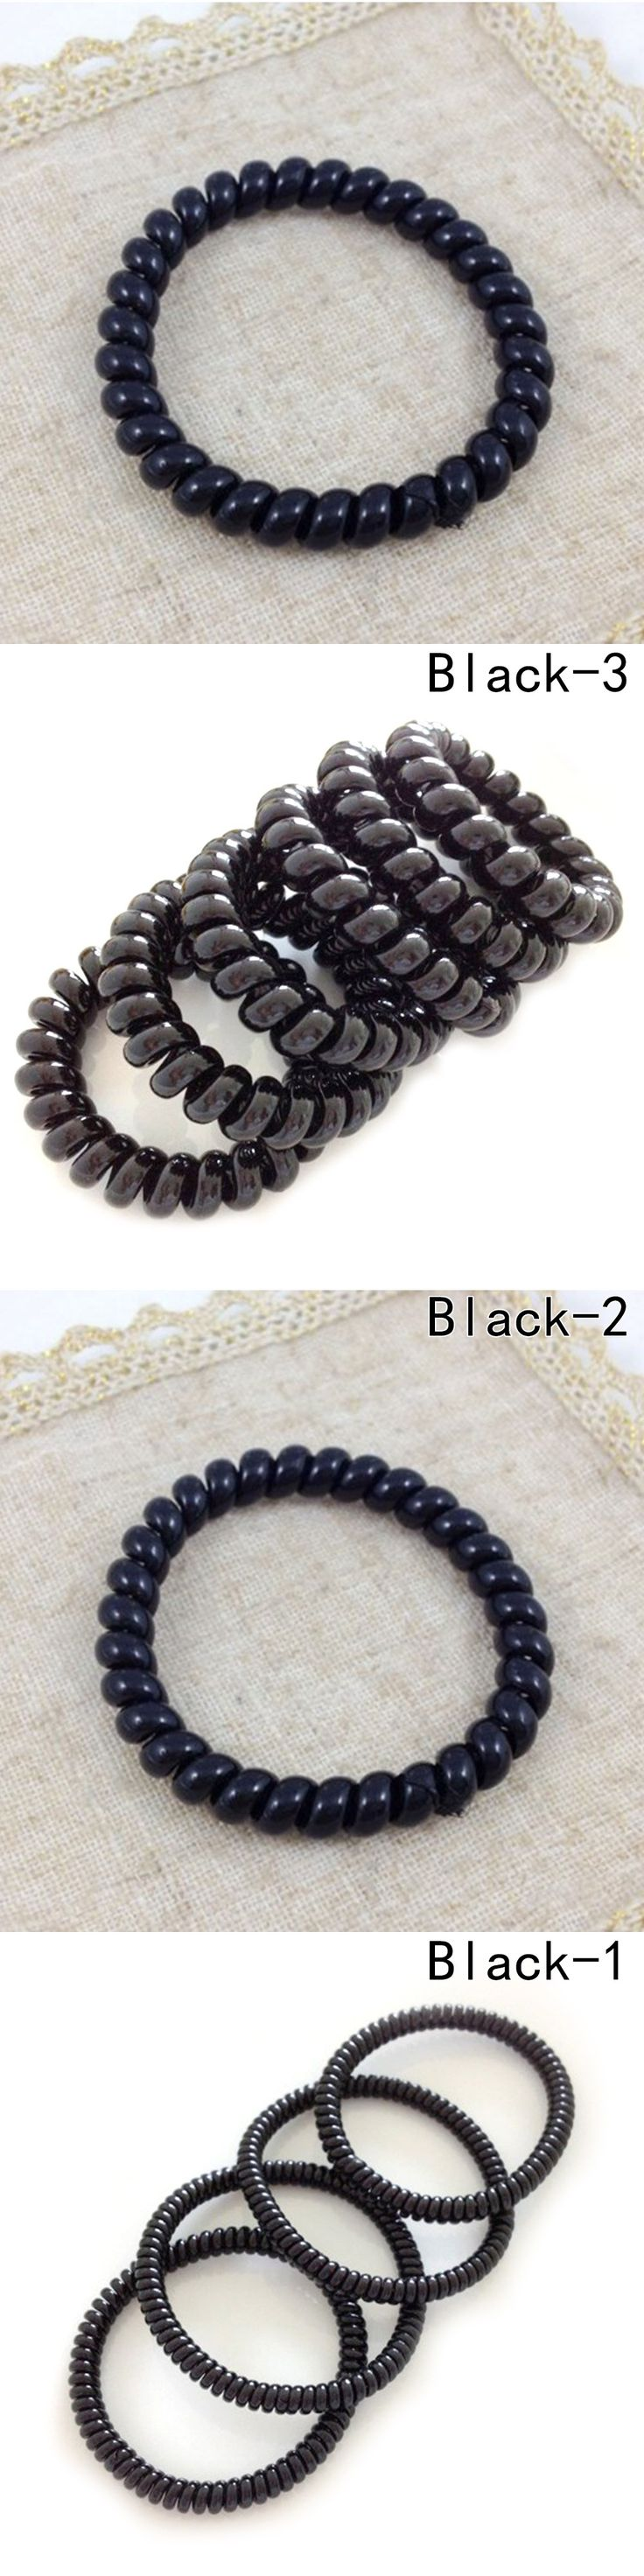 5pcs/set Telephone Lines Hair Gum Hair Accessories For Women Ring Rope, Elastic Rubber Black Color without trace 3 size